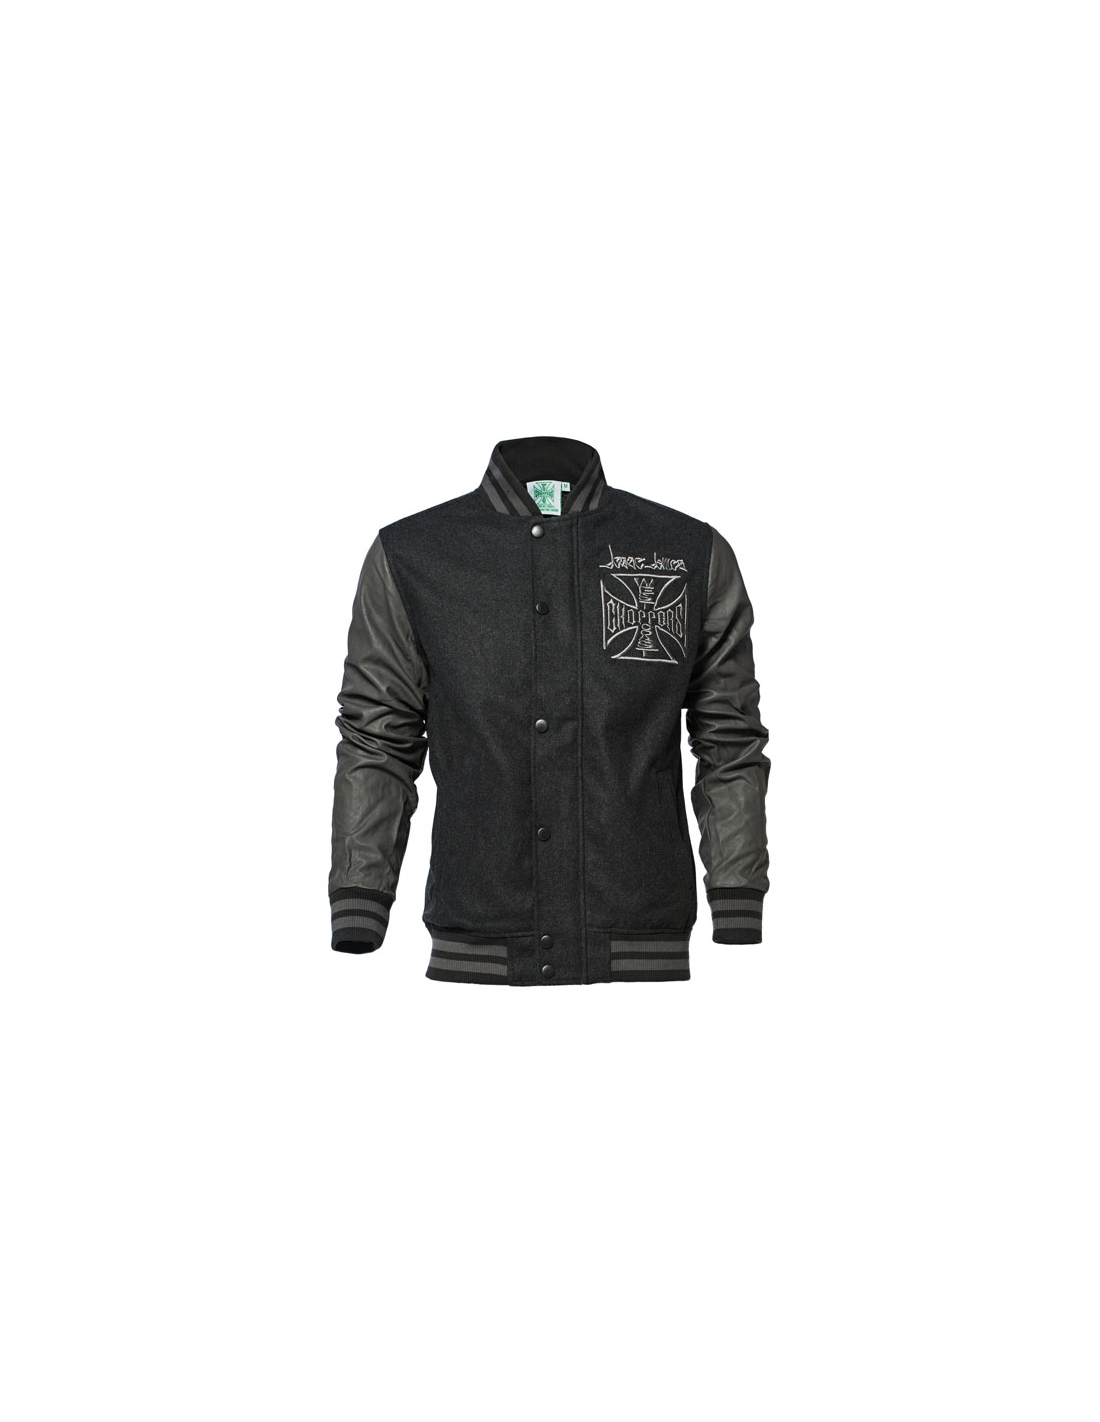 4aa41831a308f9 West Coast Choppers Jacke - OG Cross Baseball Grau Schwarz